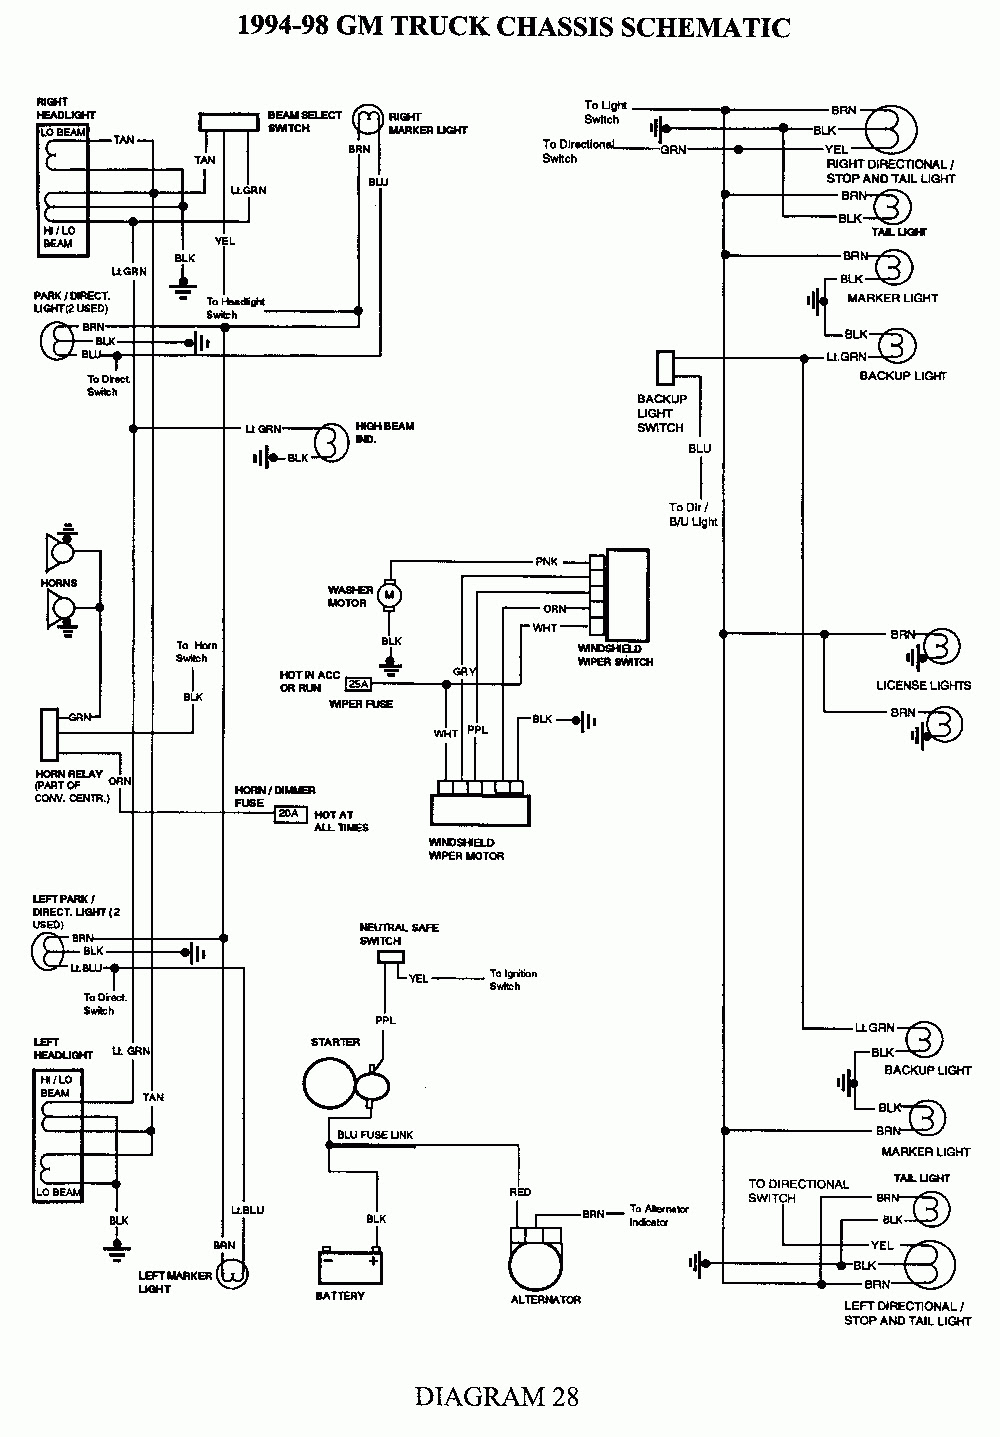 29 Blazer Trailer Lights Wiring Diagram